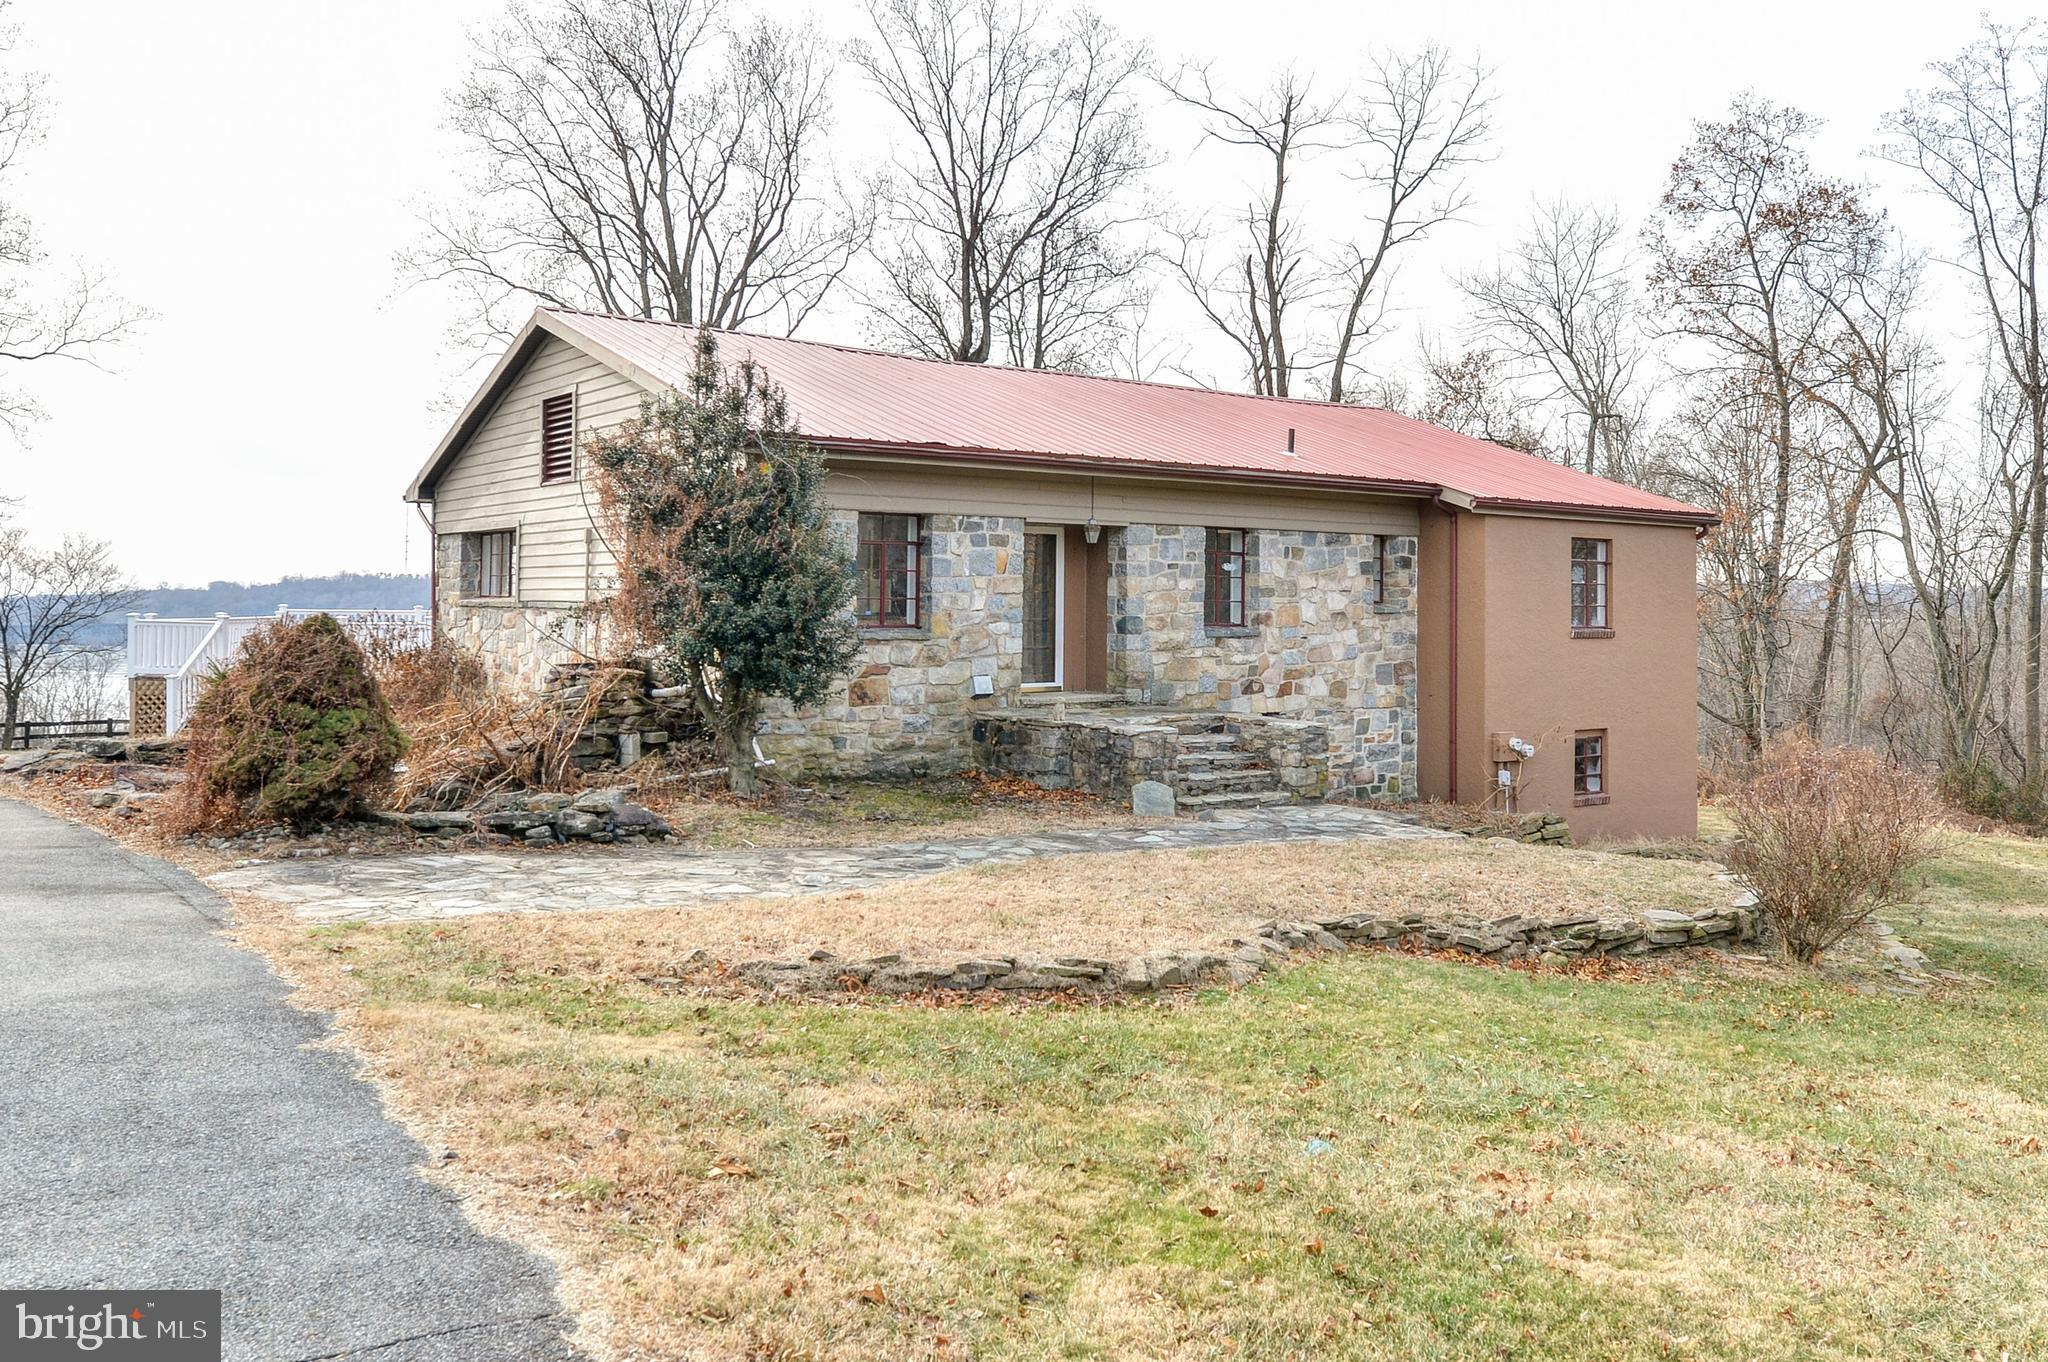 80 ALLSTONE Ln, Perryville, MD, 21903